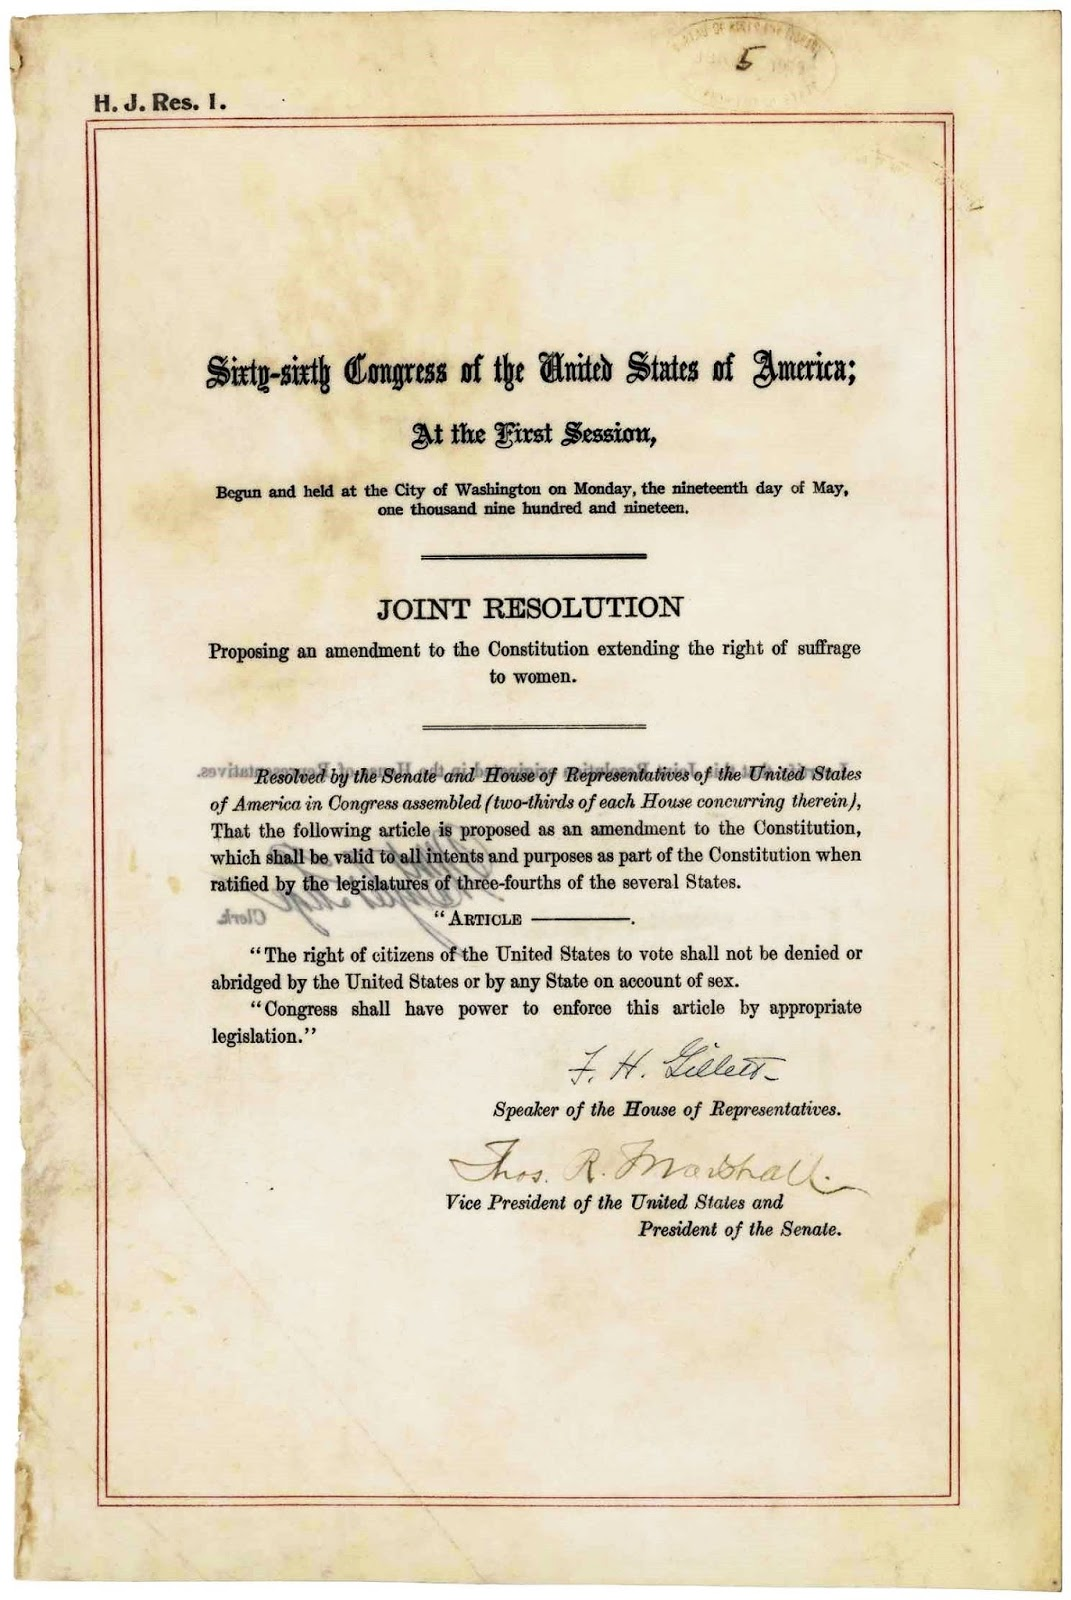 united states constitution and citizenship day: 19th amendment